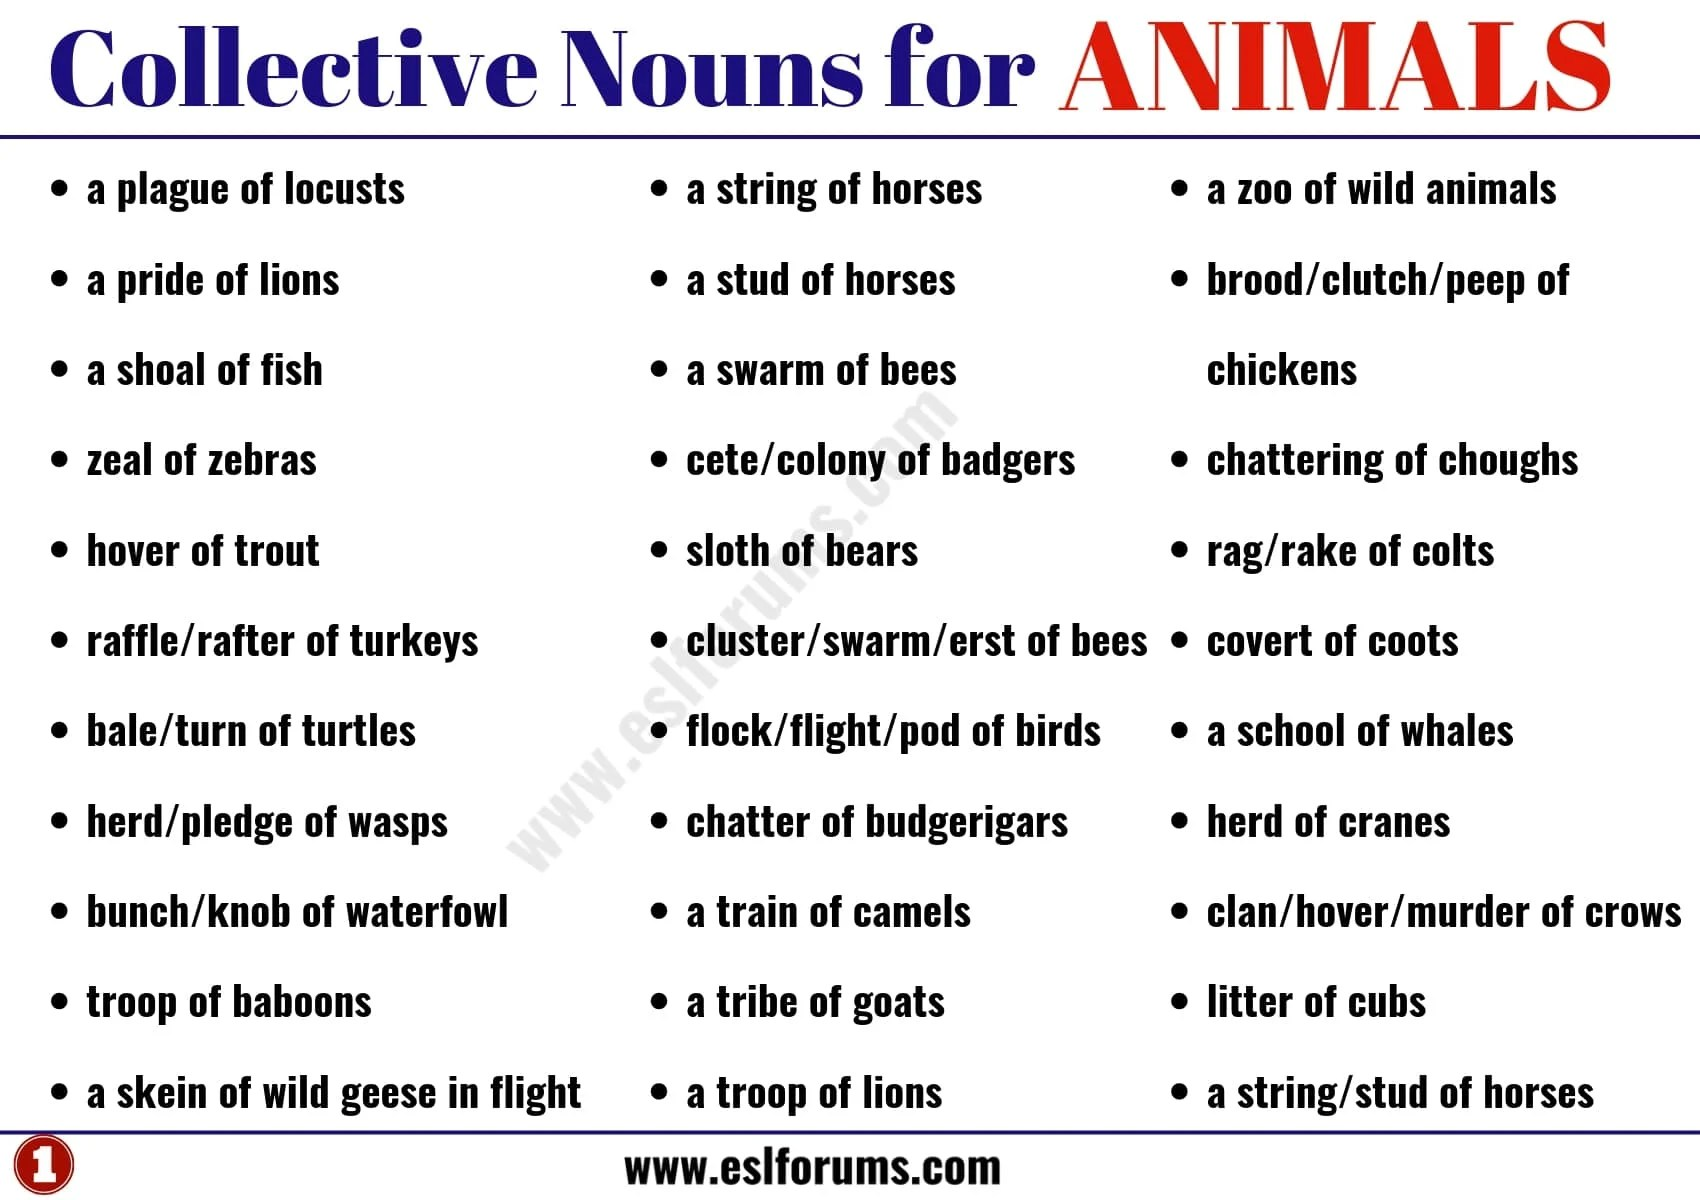 Useful Collective Nouns For Animals In English